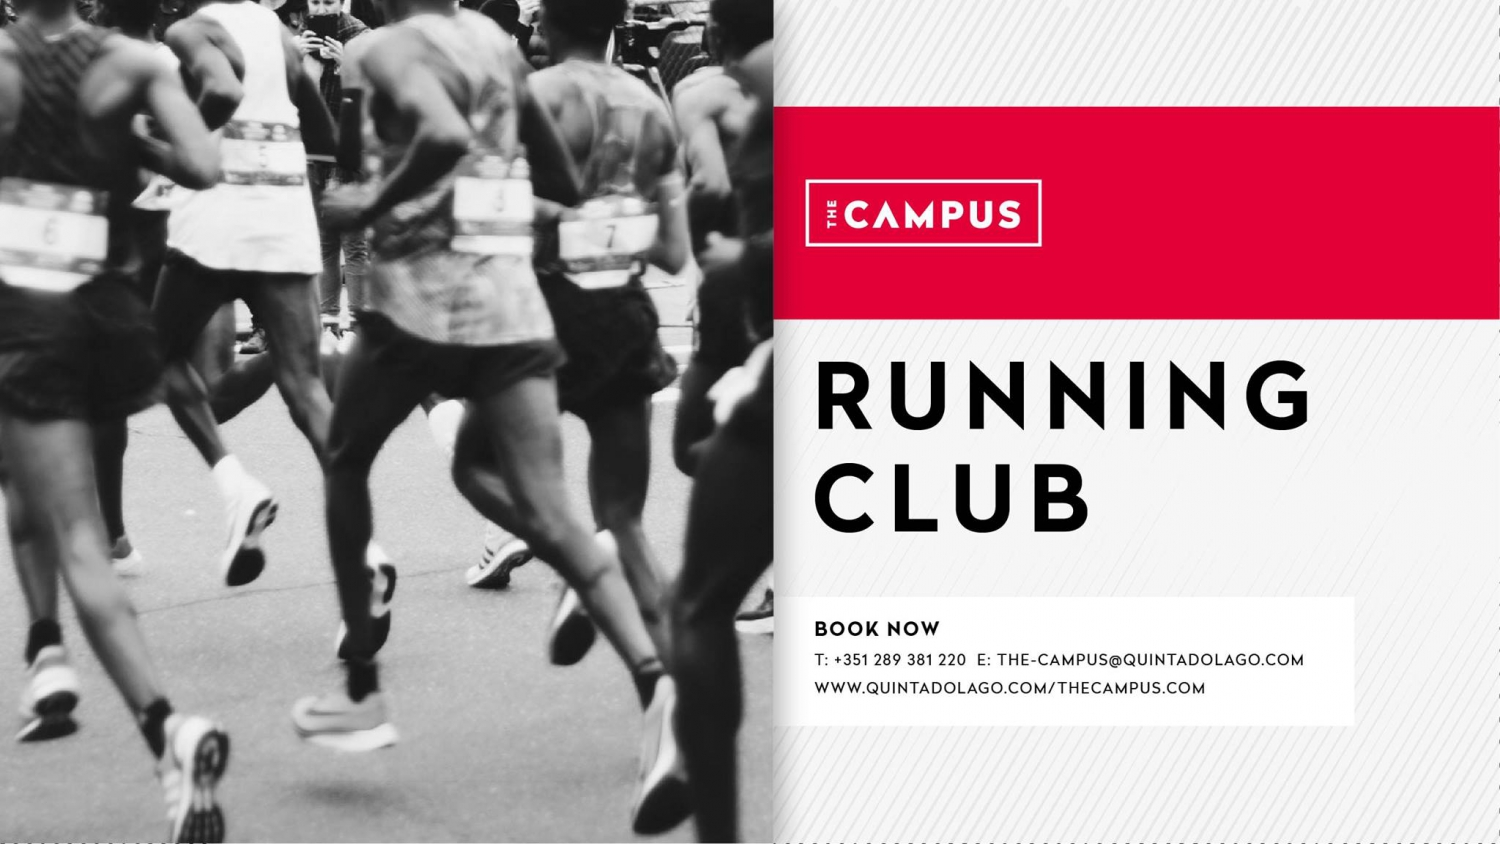 The Running Club at The Campus